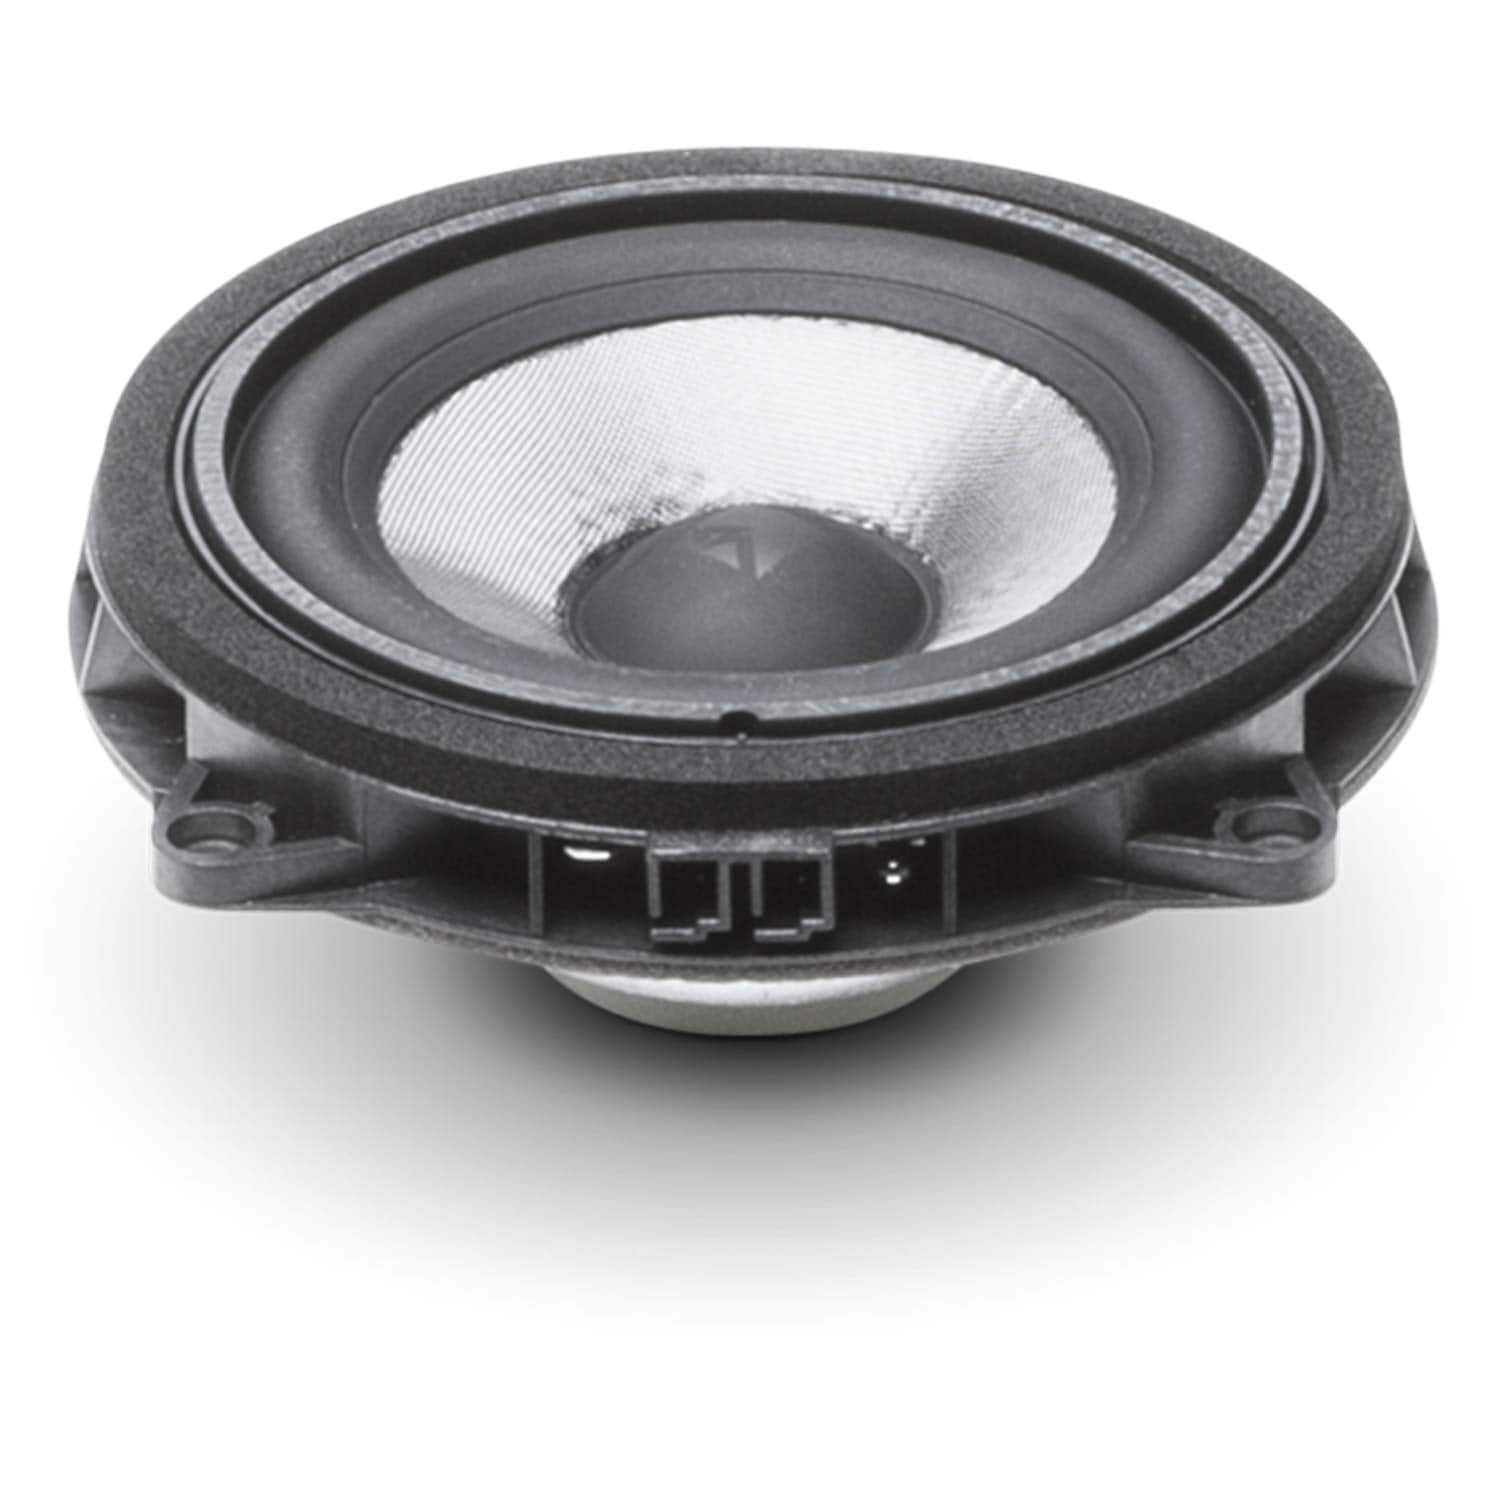 Rockford Power Series OE Integration - BMW Direct Fit Speakers T3-BMW1